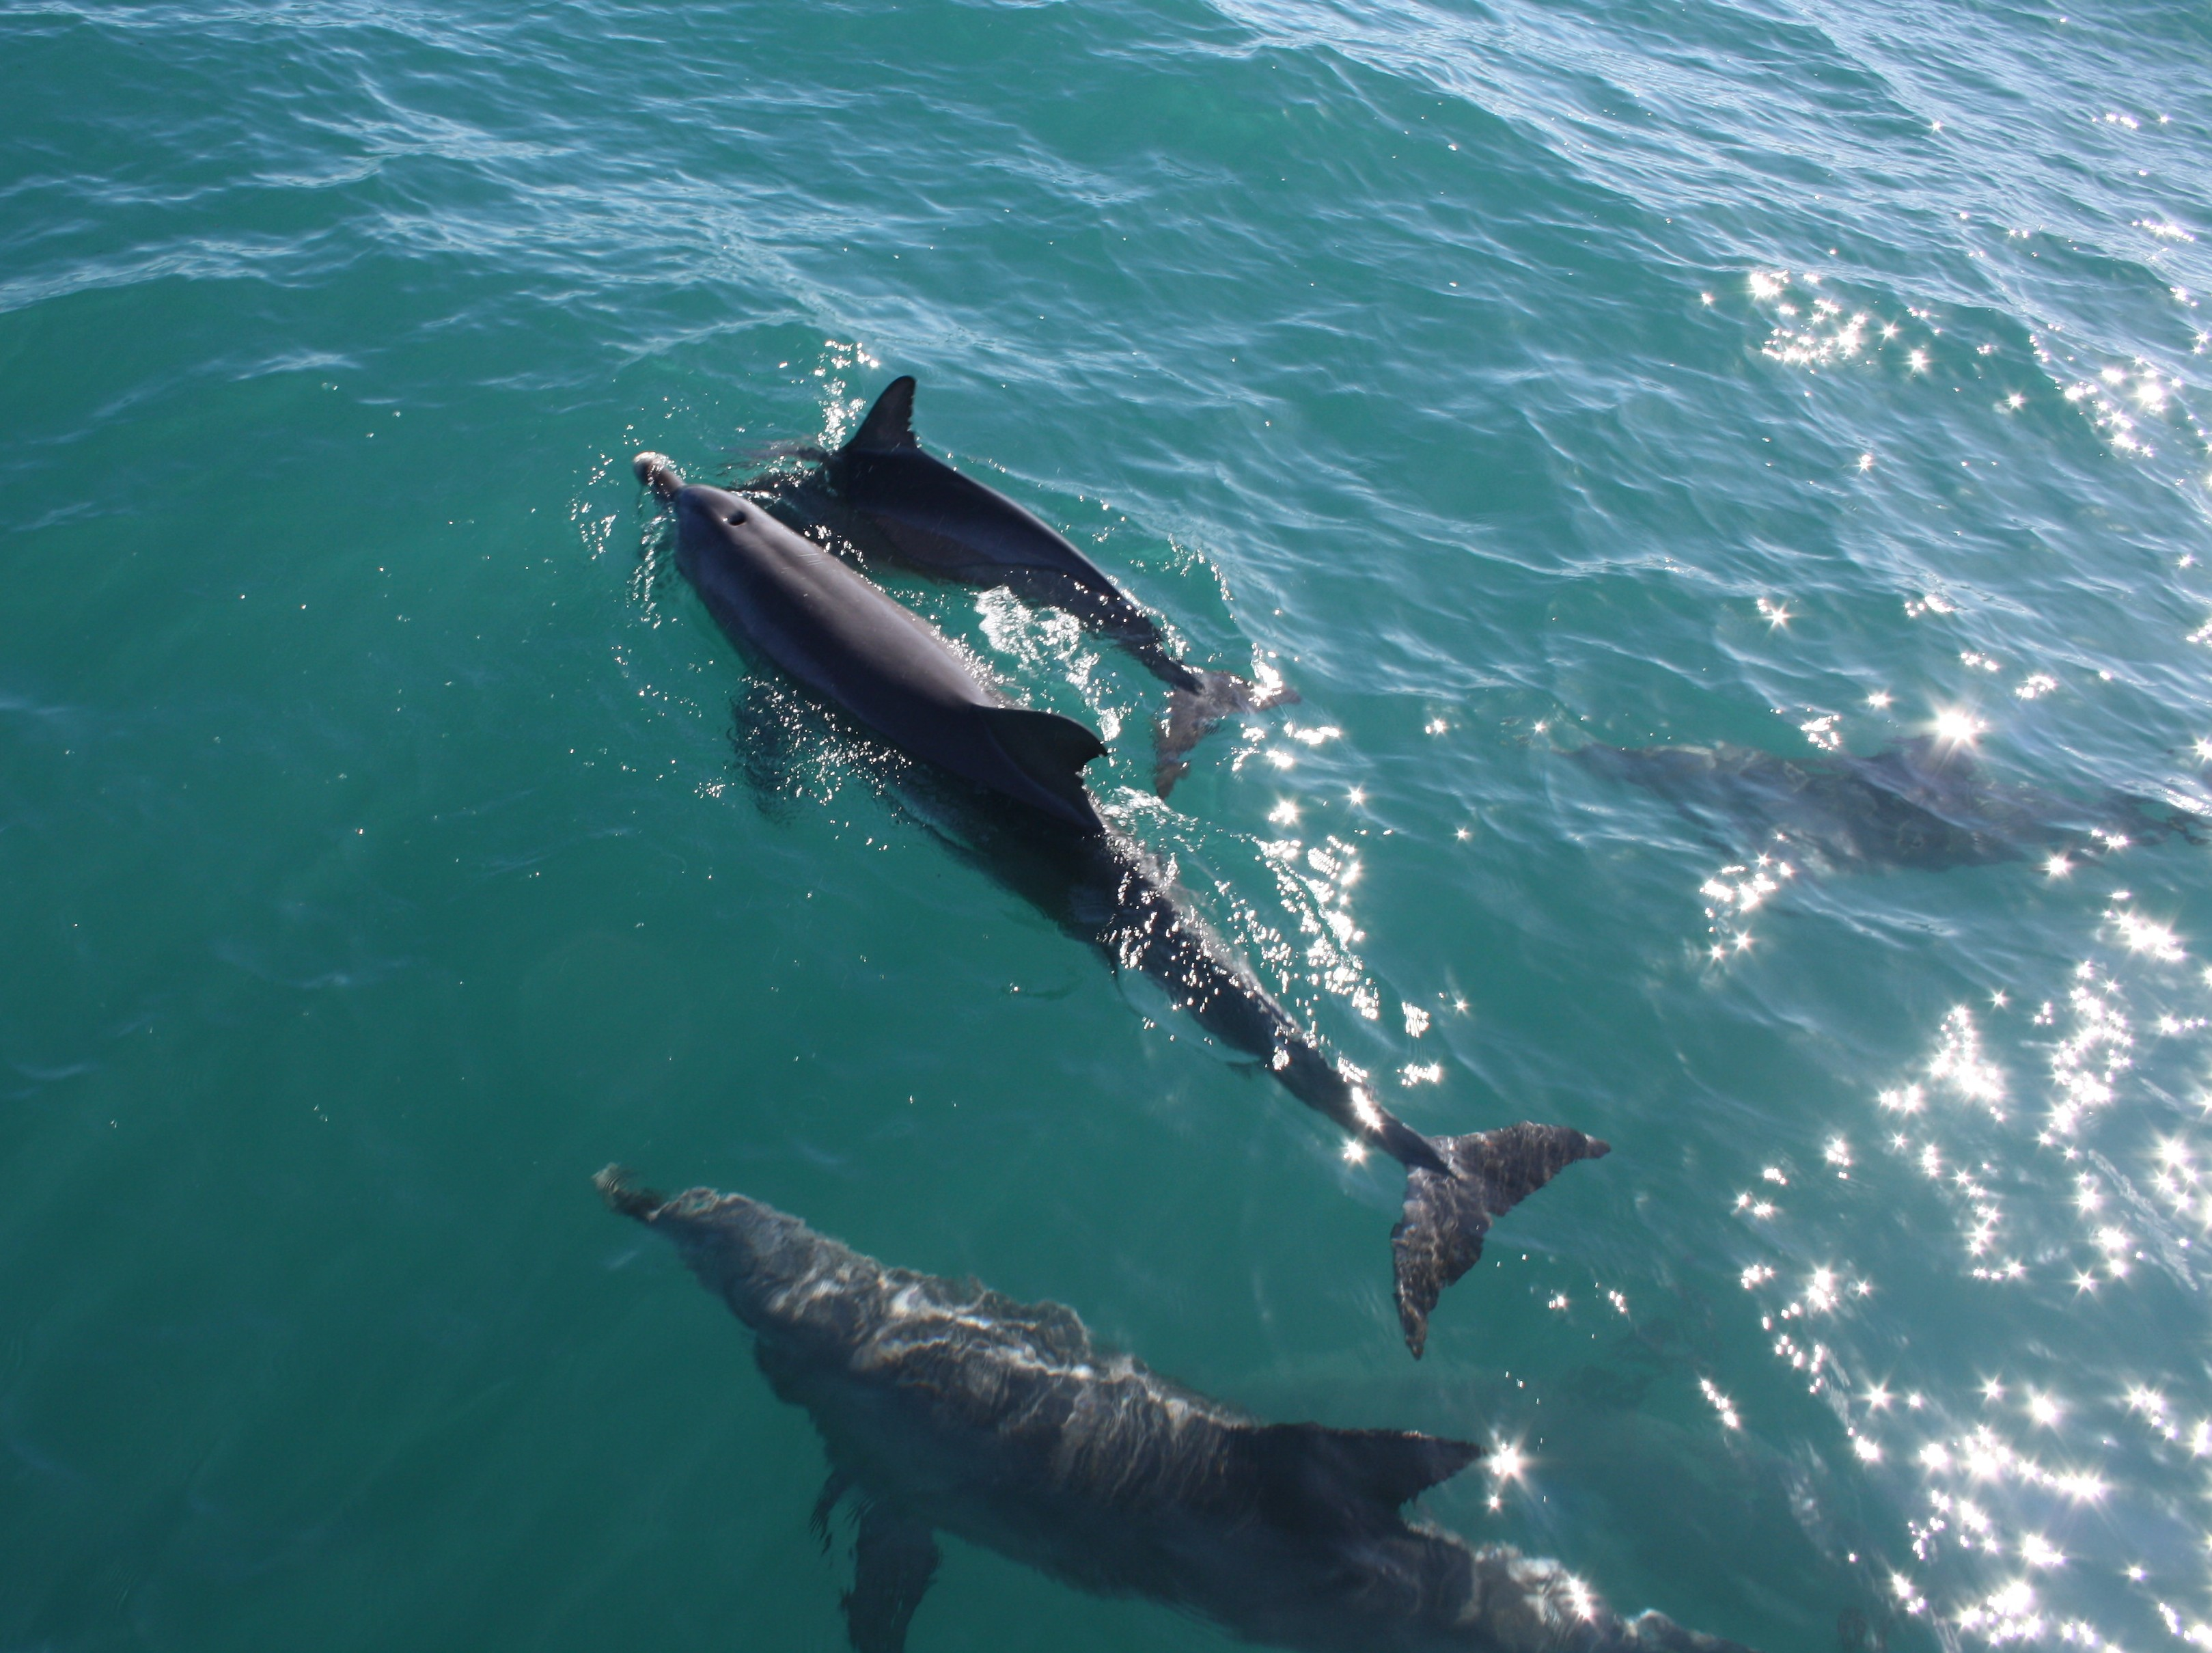 Mum and baby dolphin